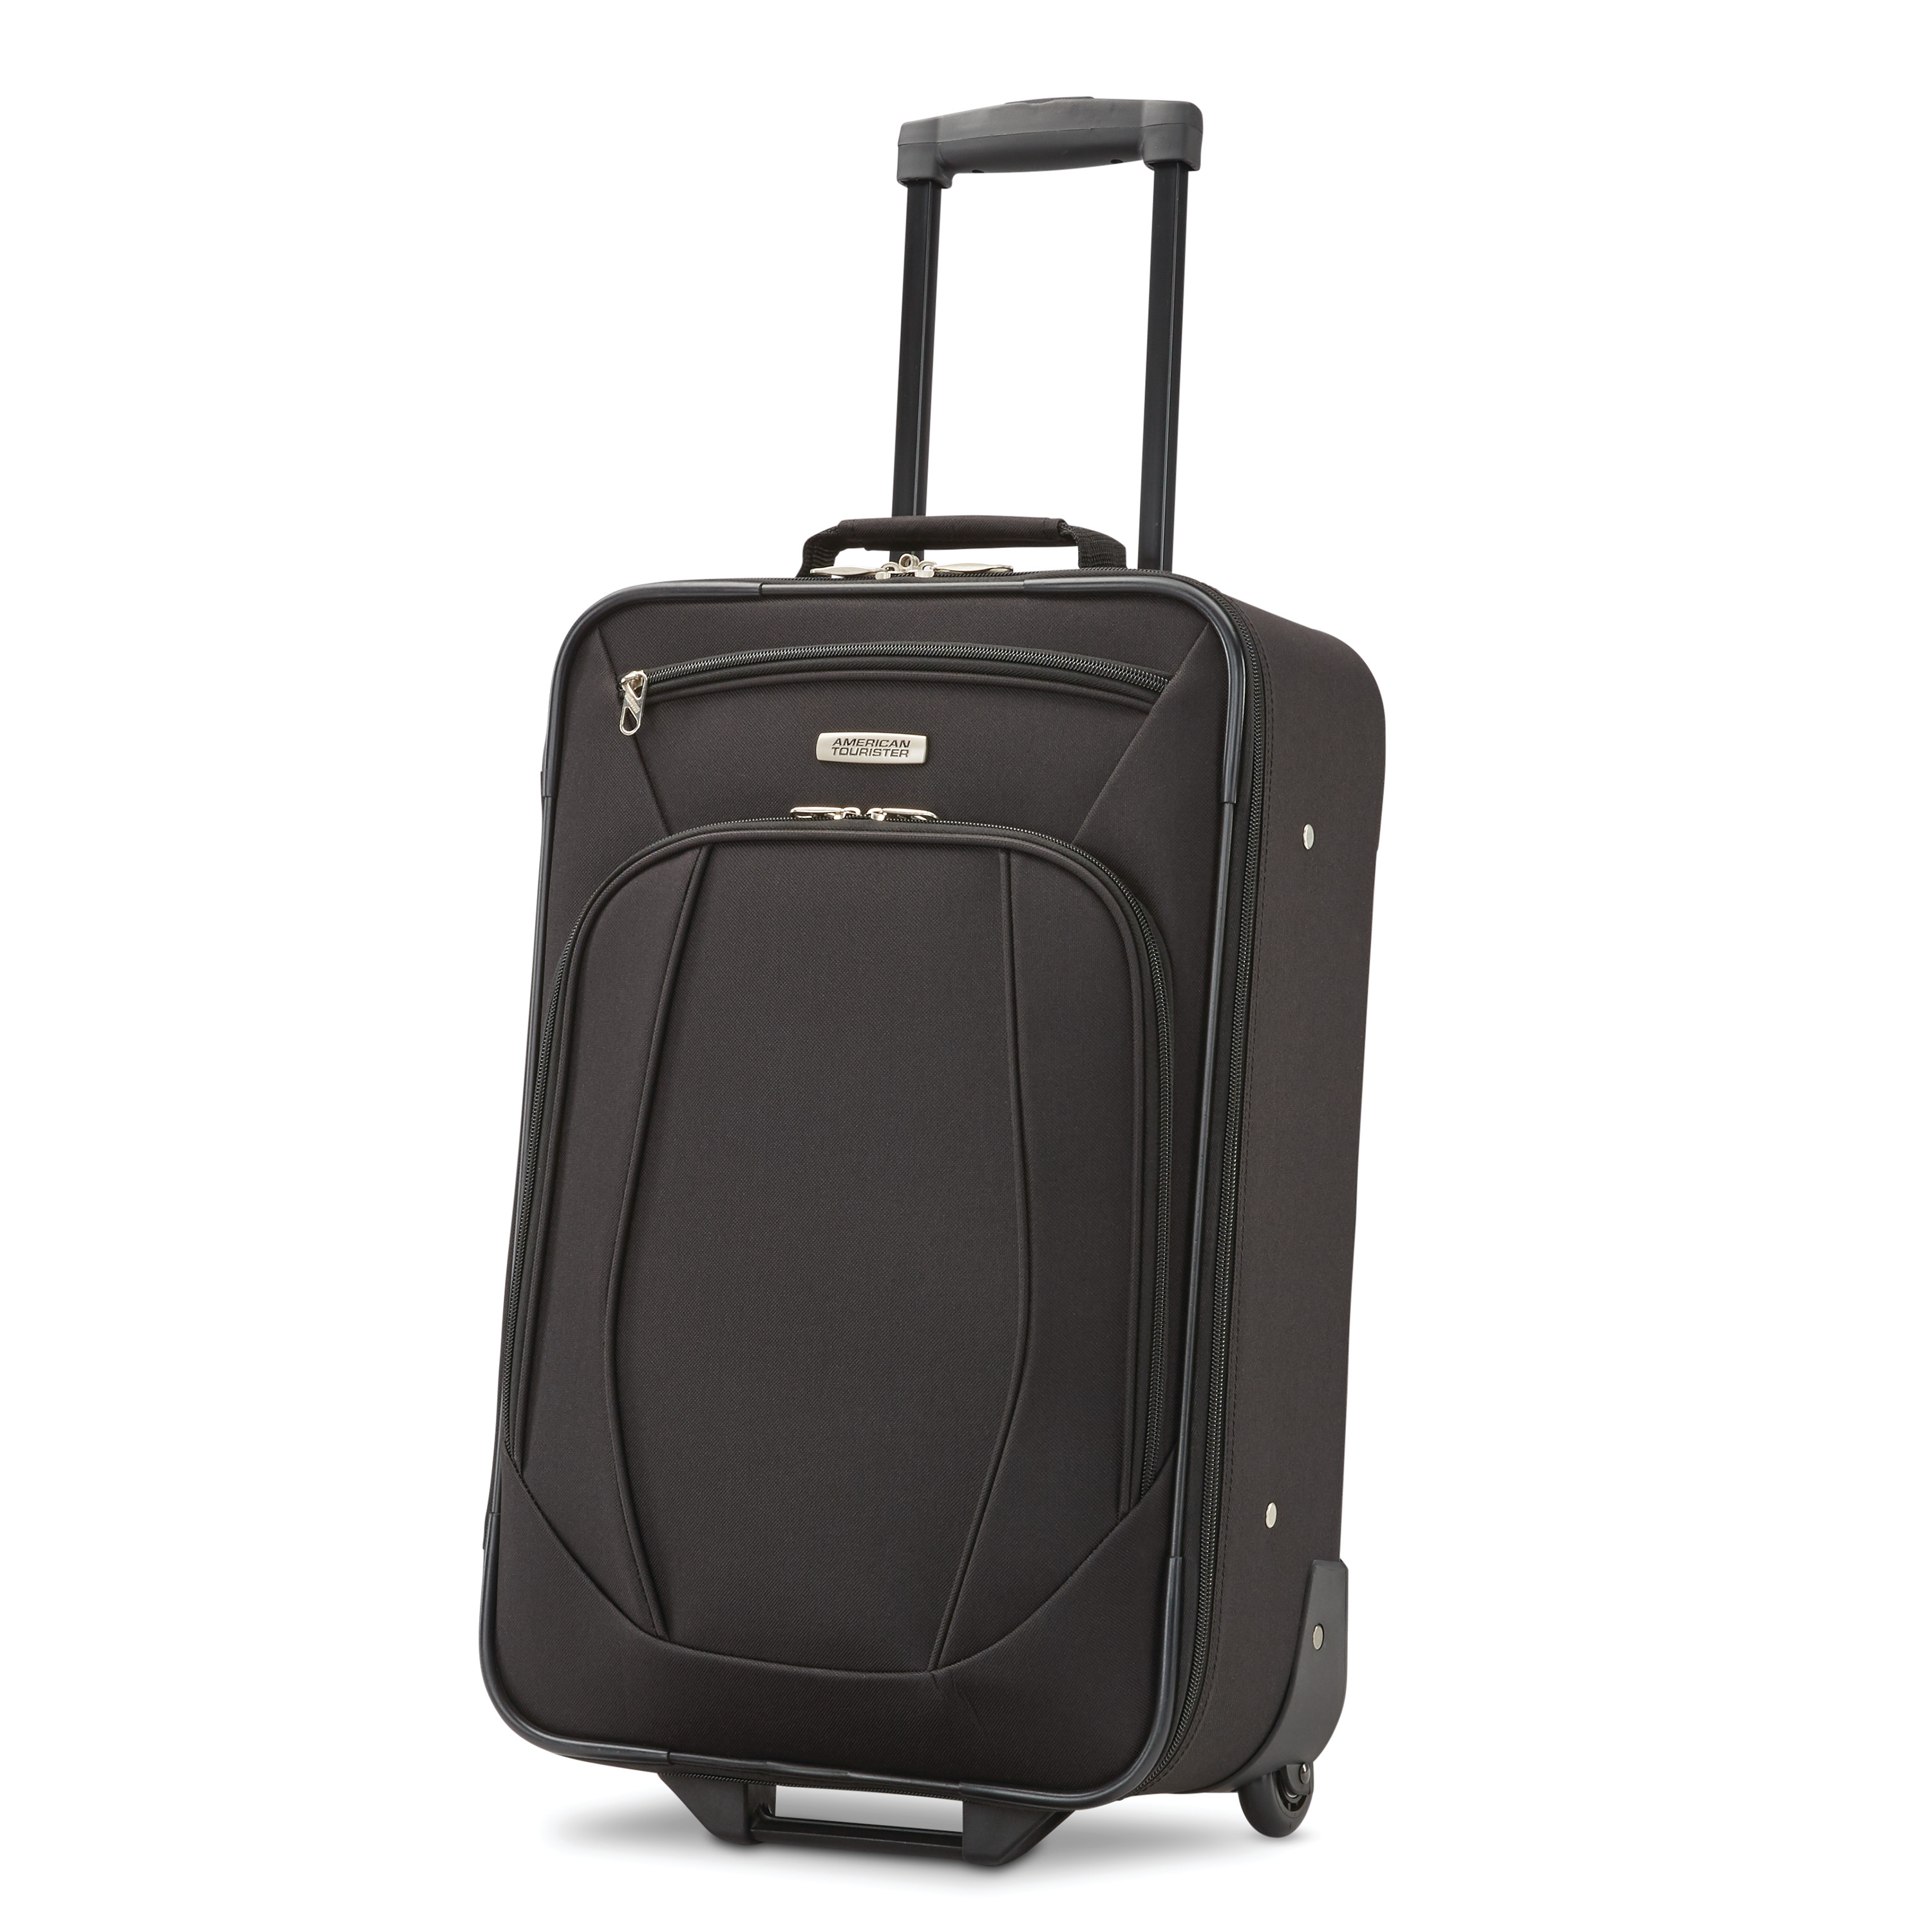 American-Tourister-Riverbend-4-Piece-Set thumbnail 7